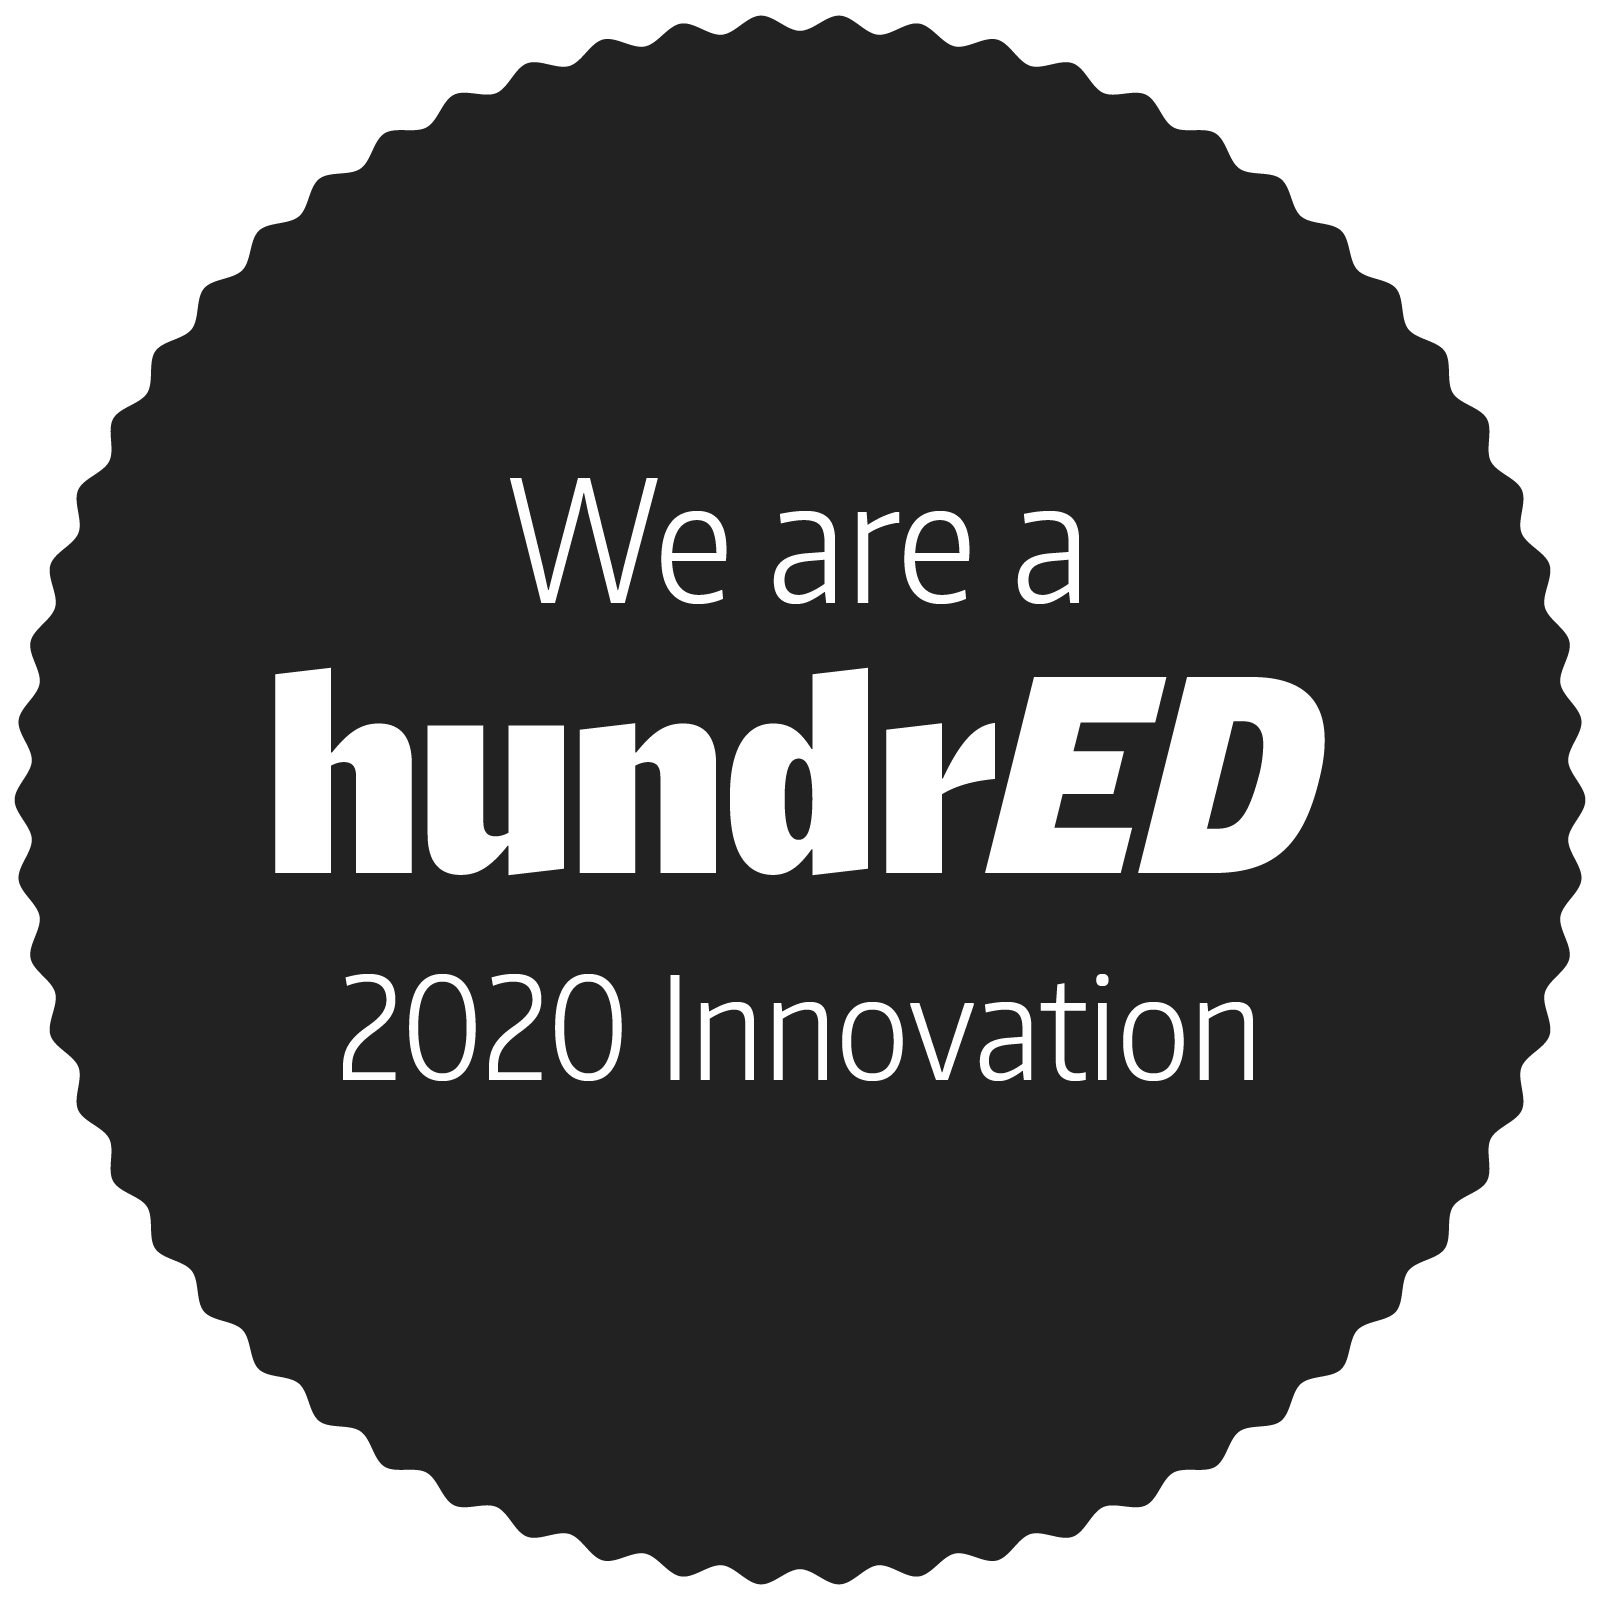 HundrED Innovation